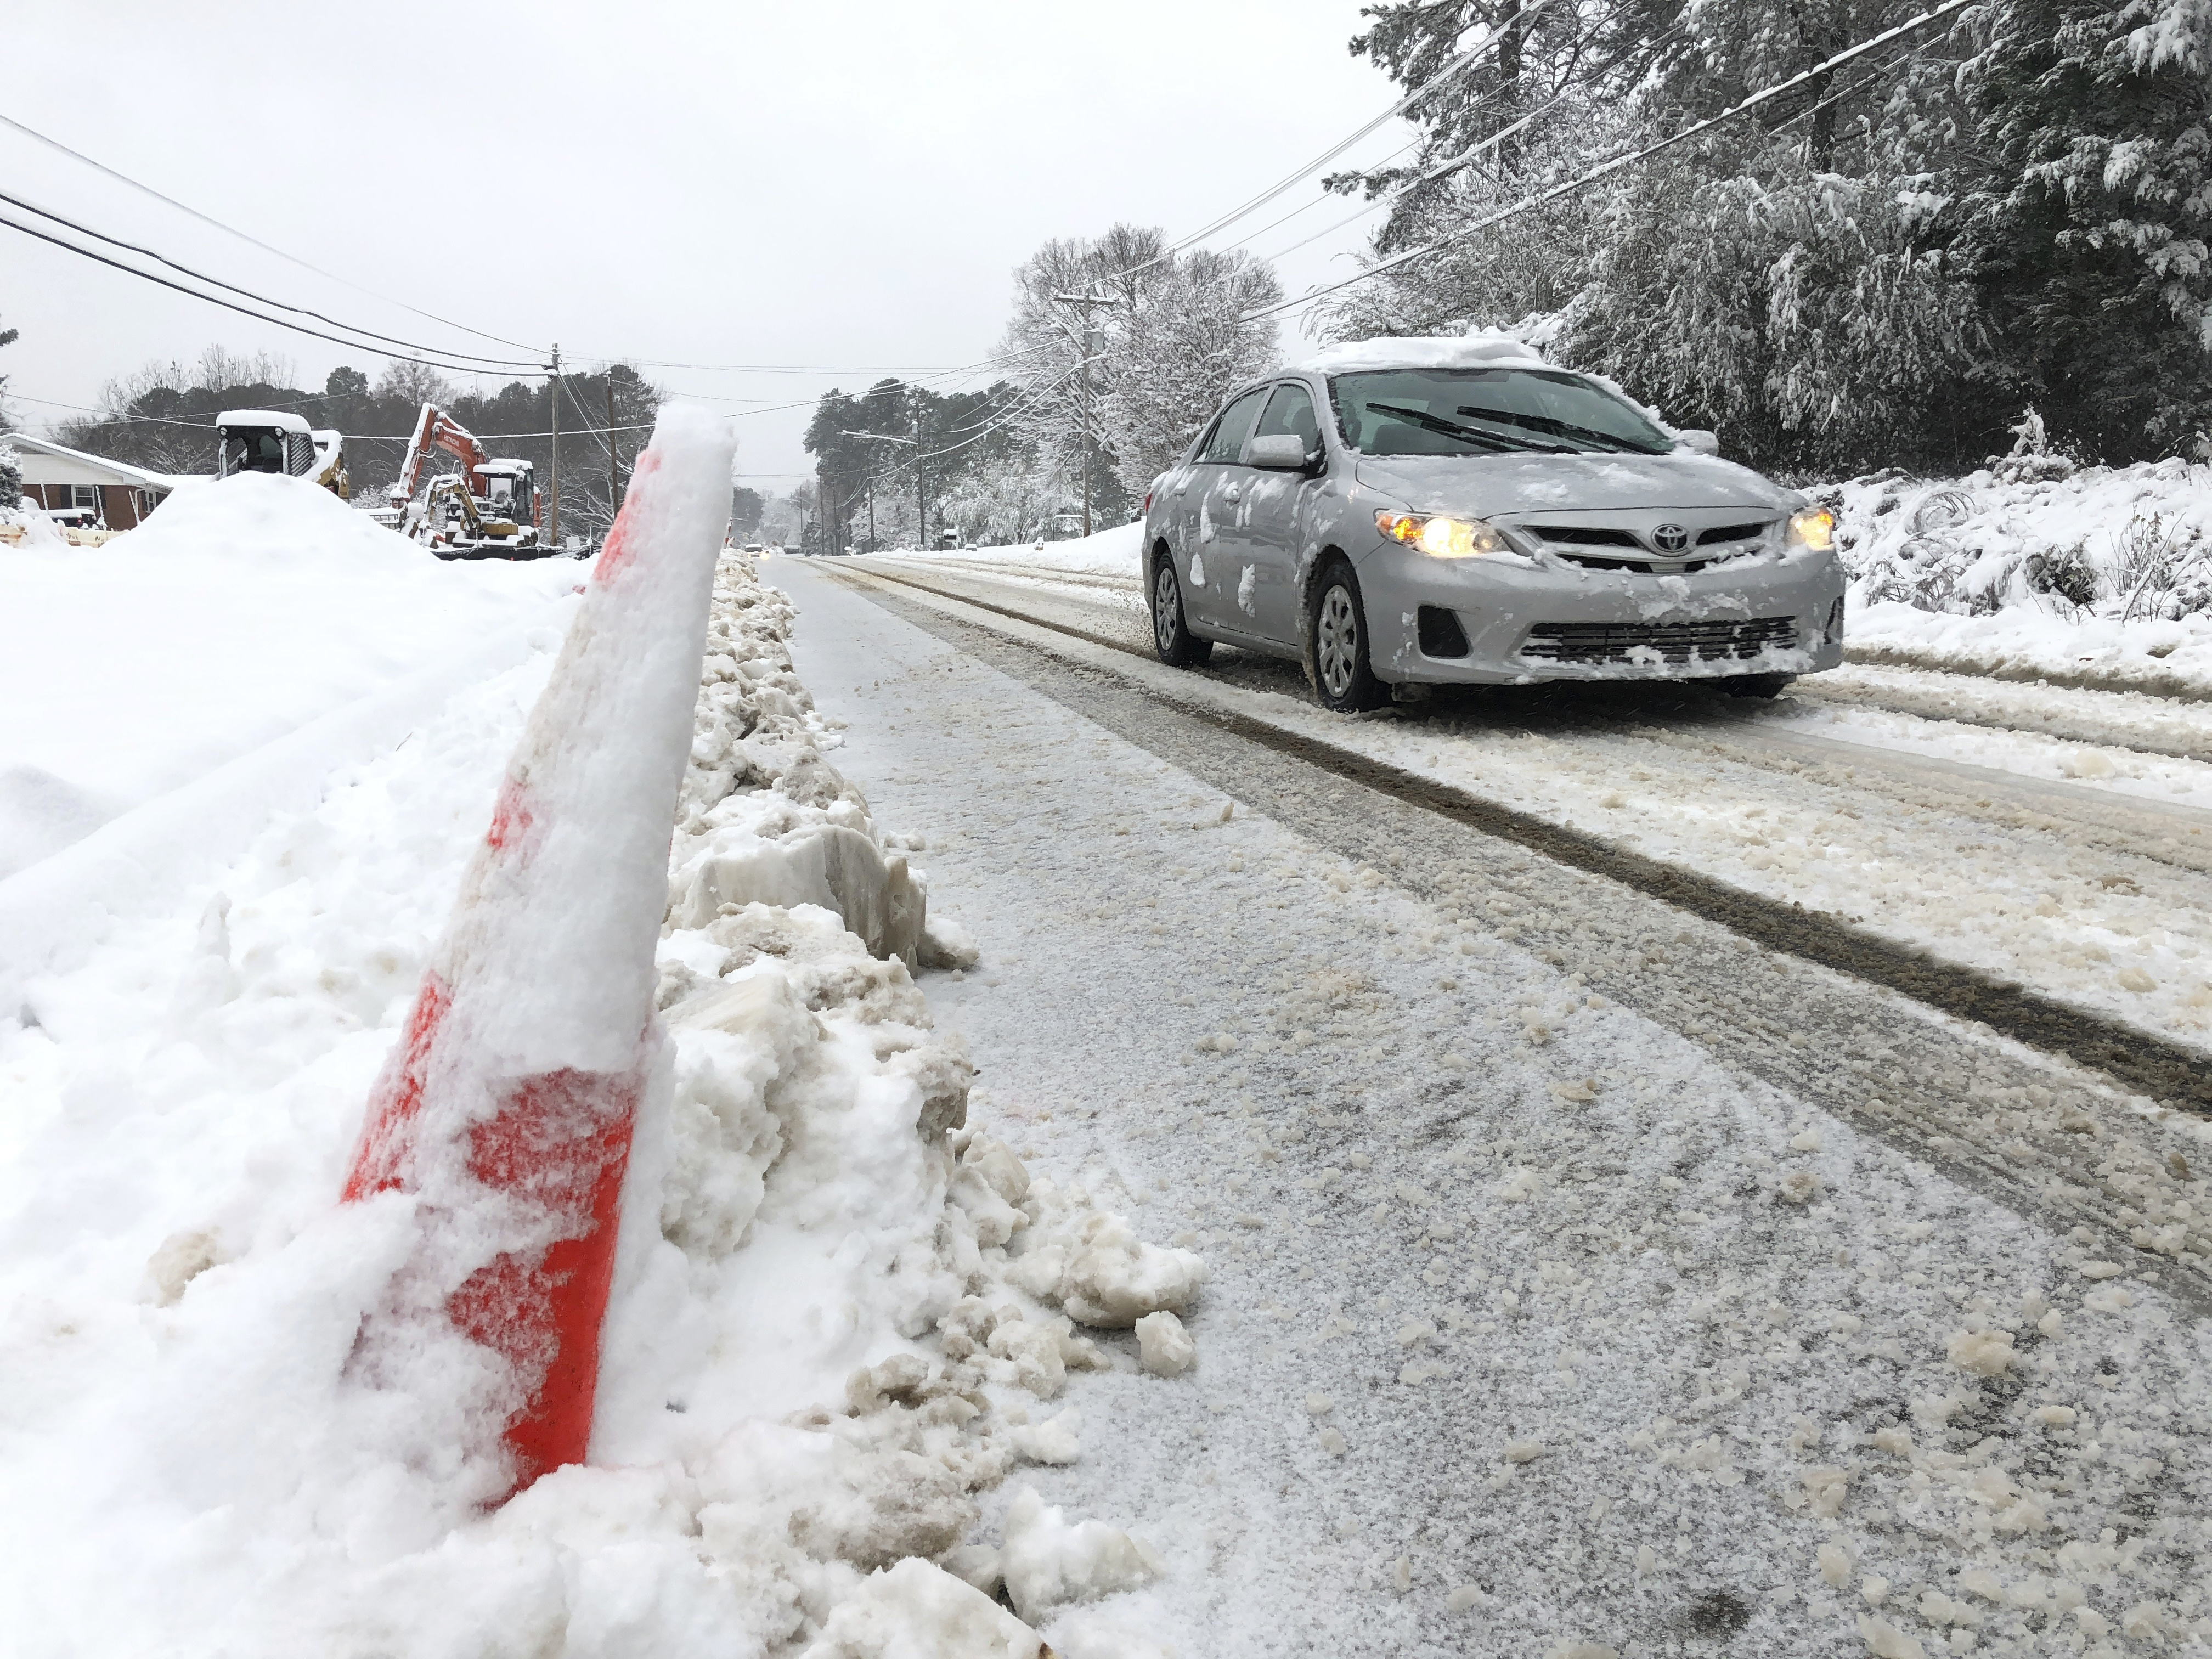 Live updates: Over 200,000 without power as heavy snow, ice pounds